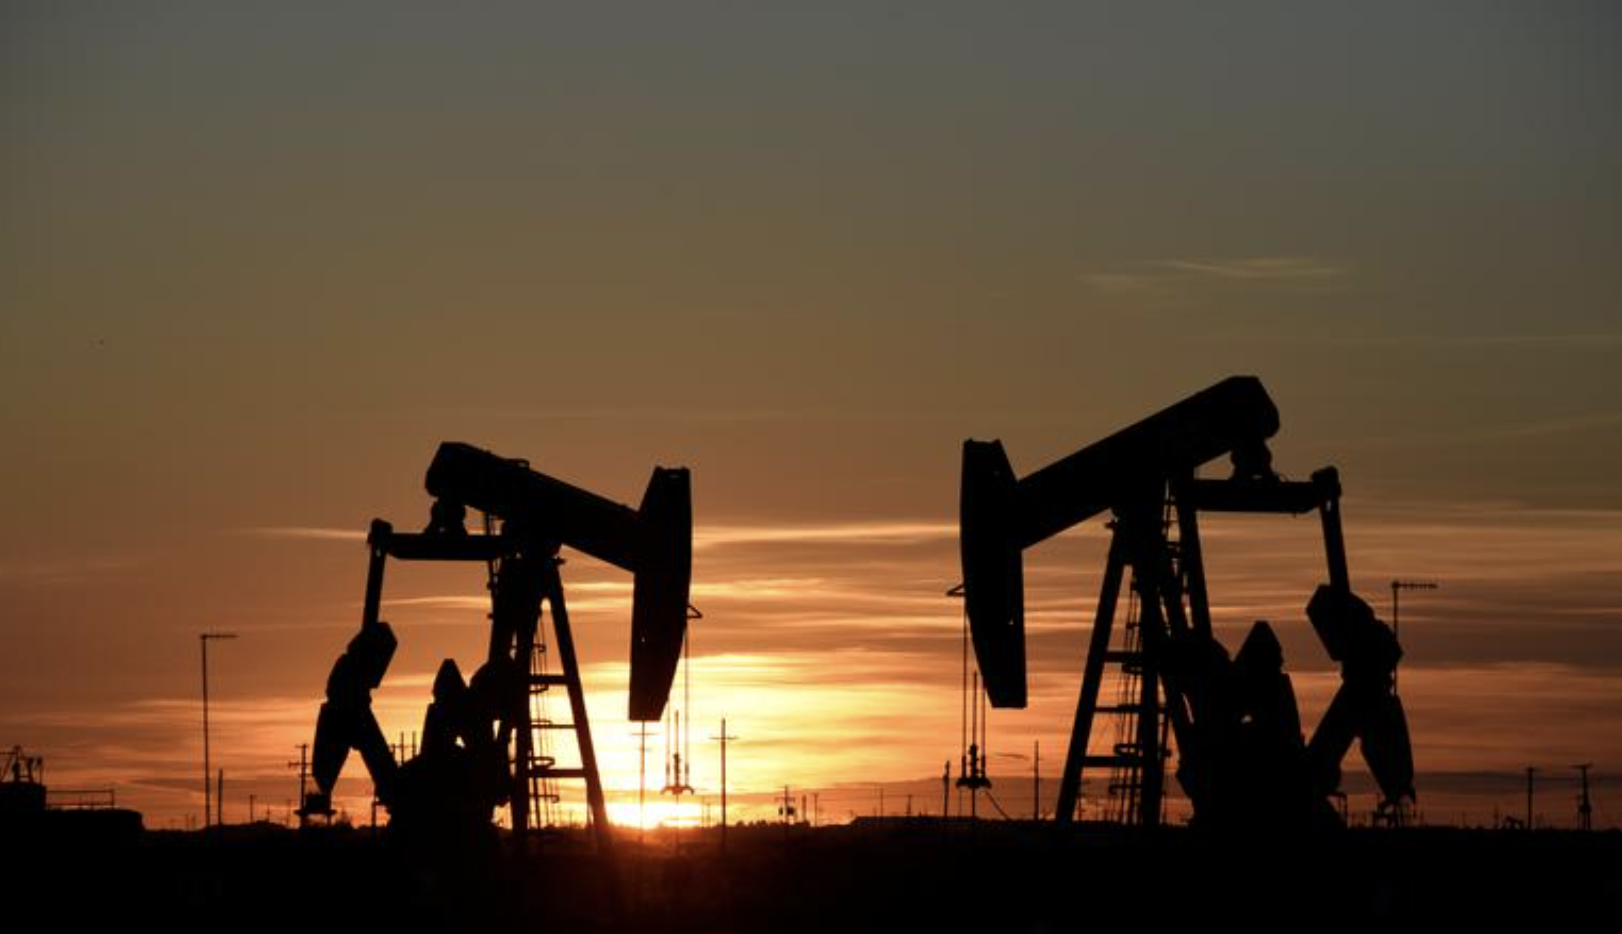 Oil prices rise to highest in a year - Khaleej Times